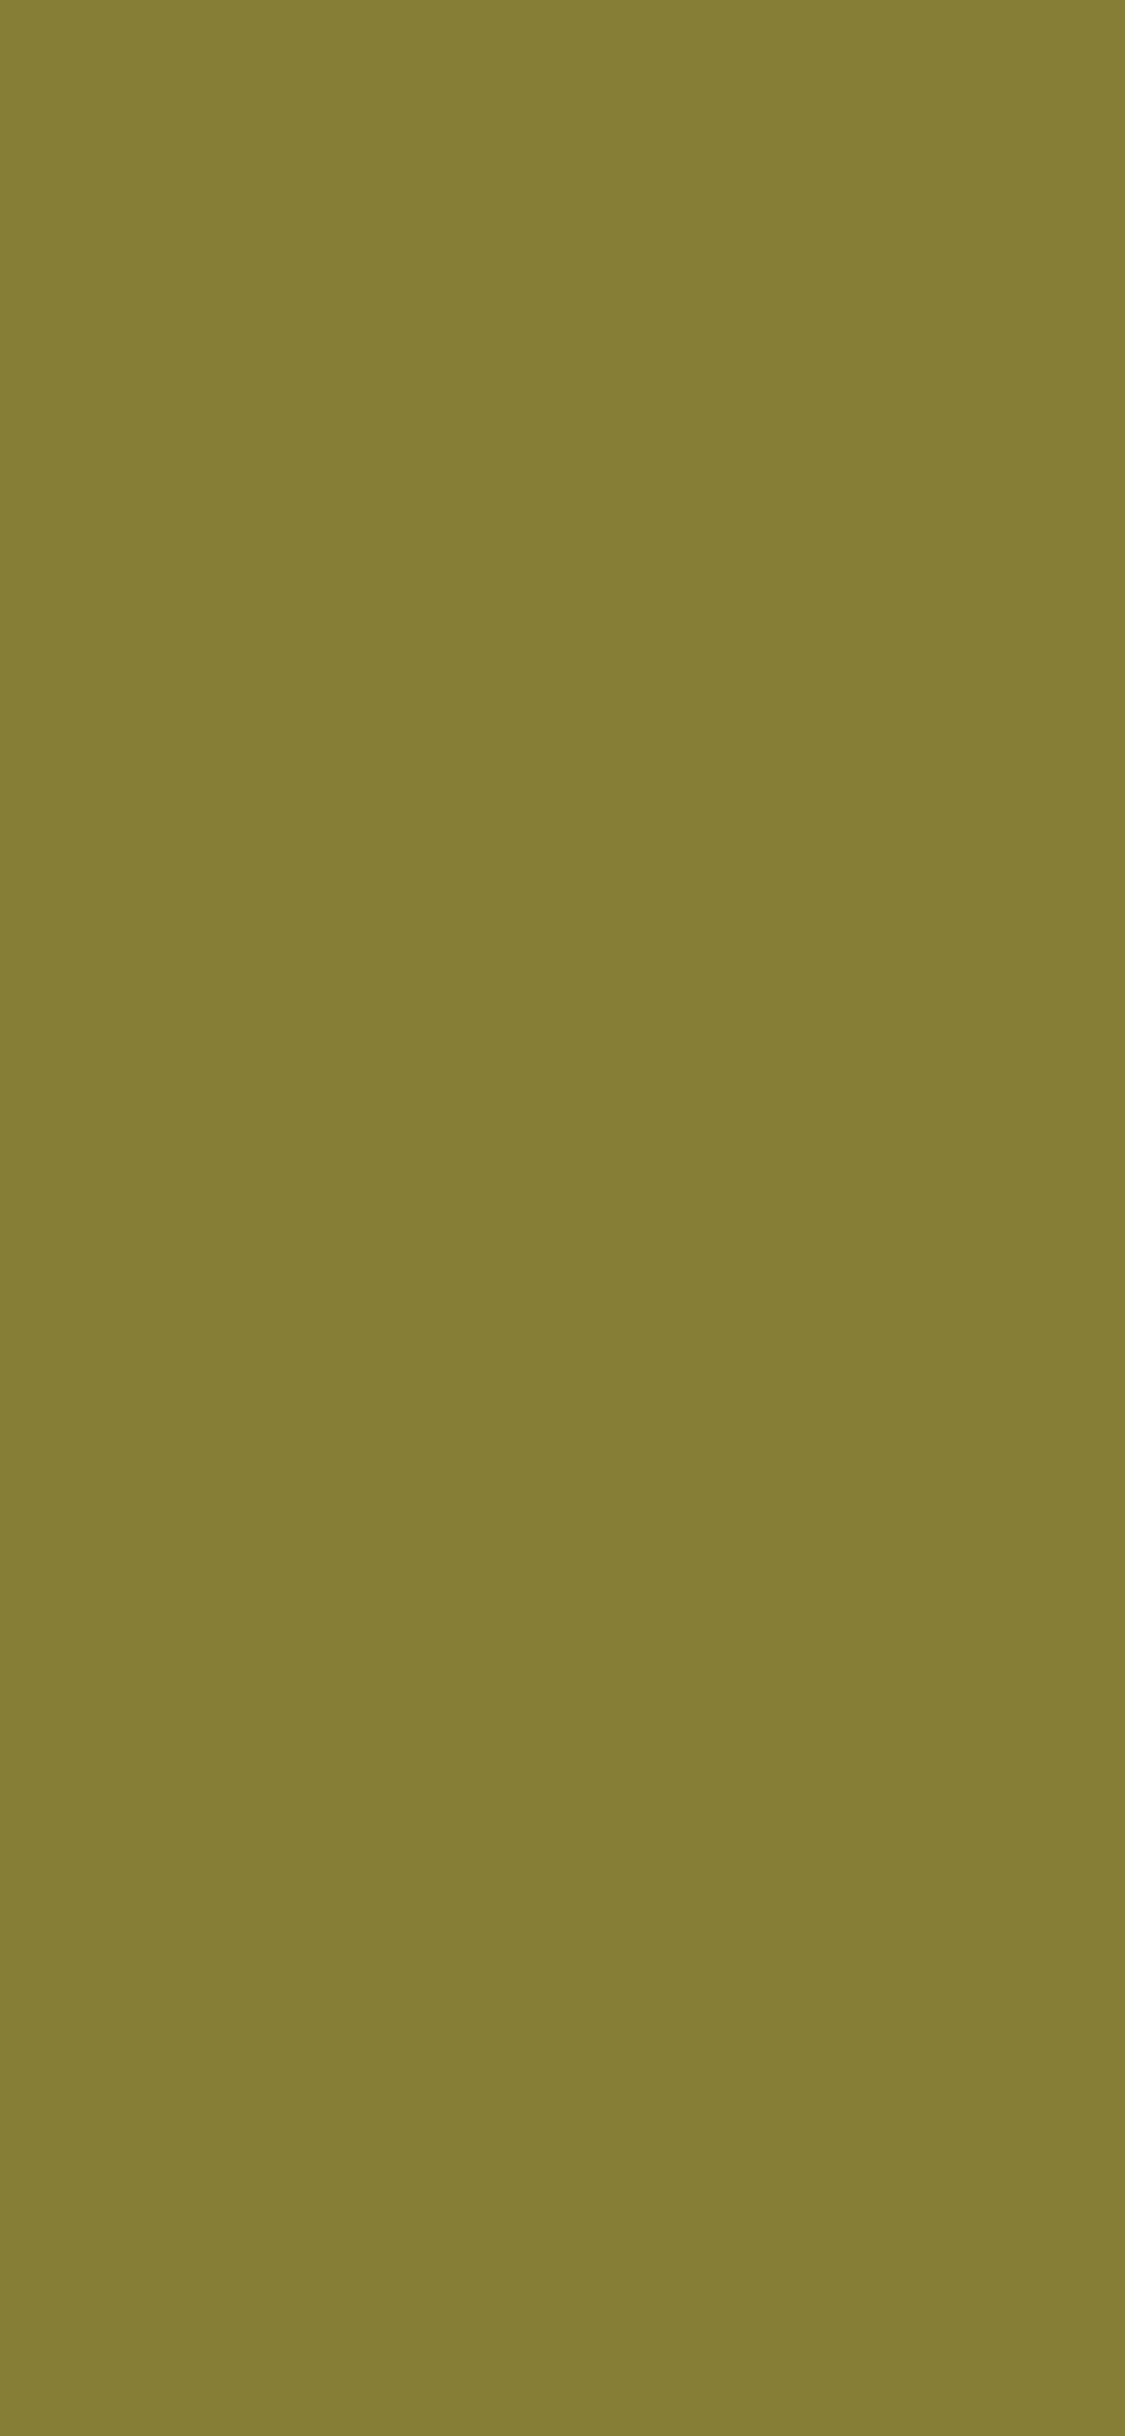 1125x2436 Old Moss Green Solid Color Background